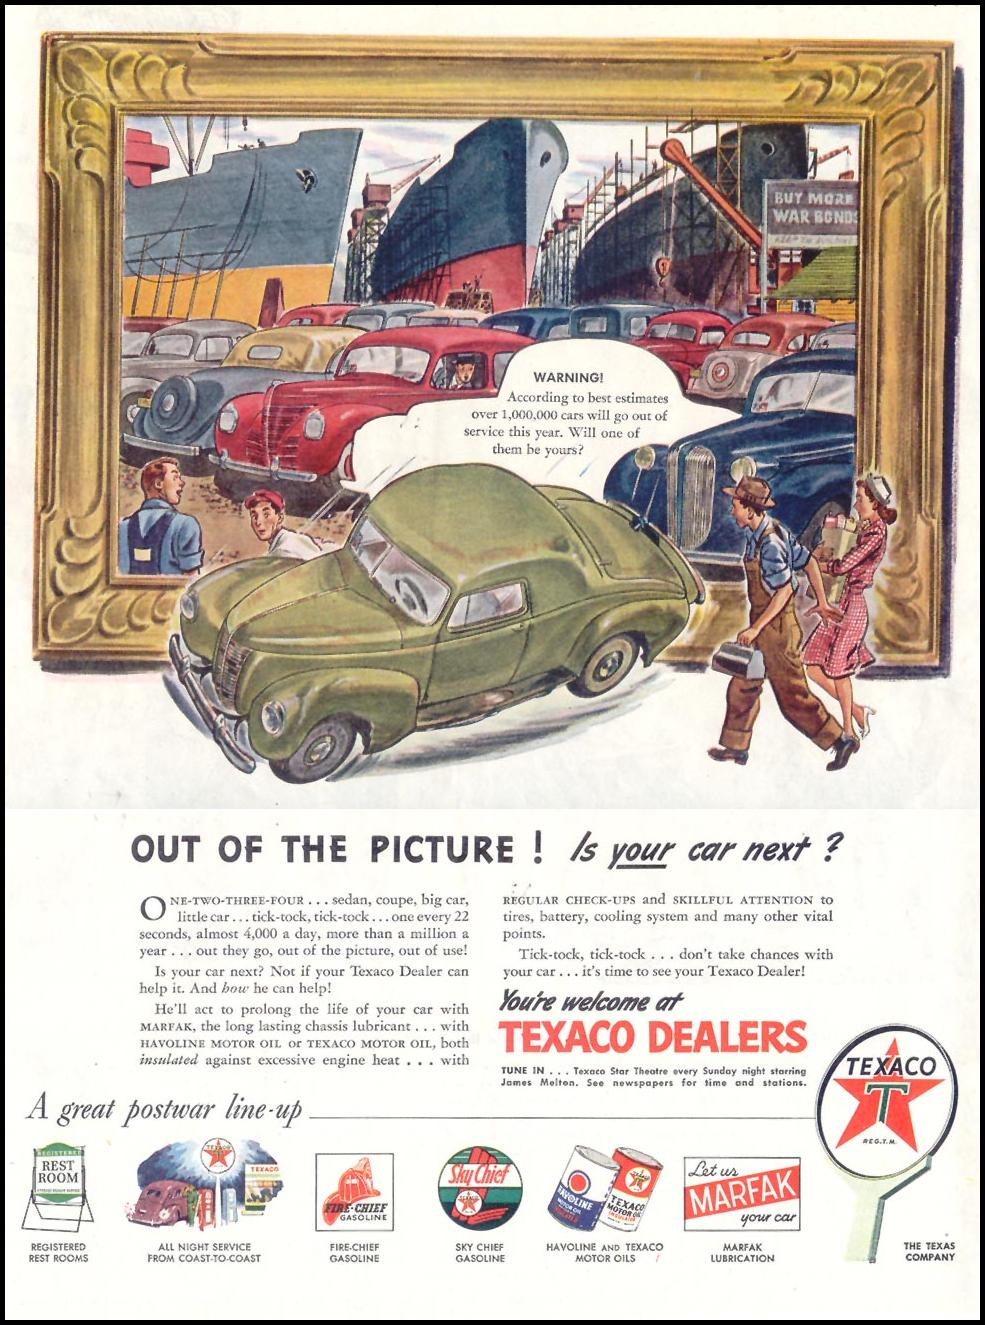 TEXACO PRODUCTS SATURDAY EVENING POST 05/19/1945